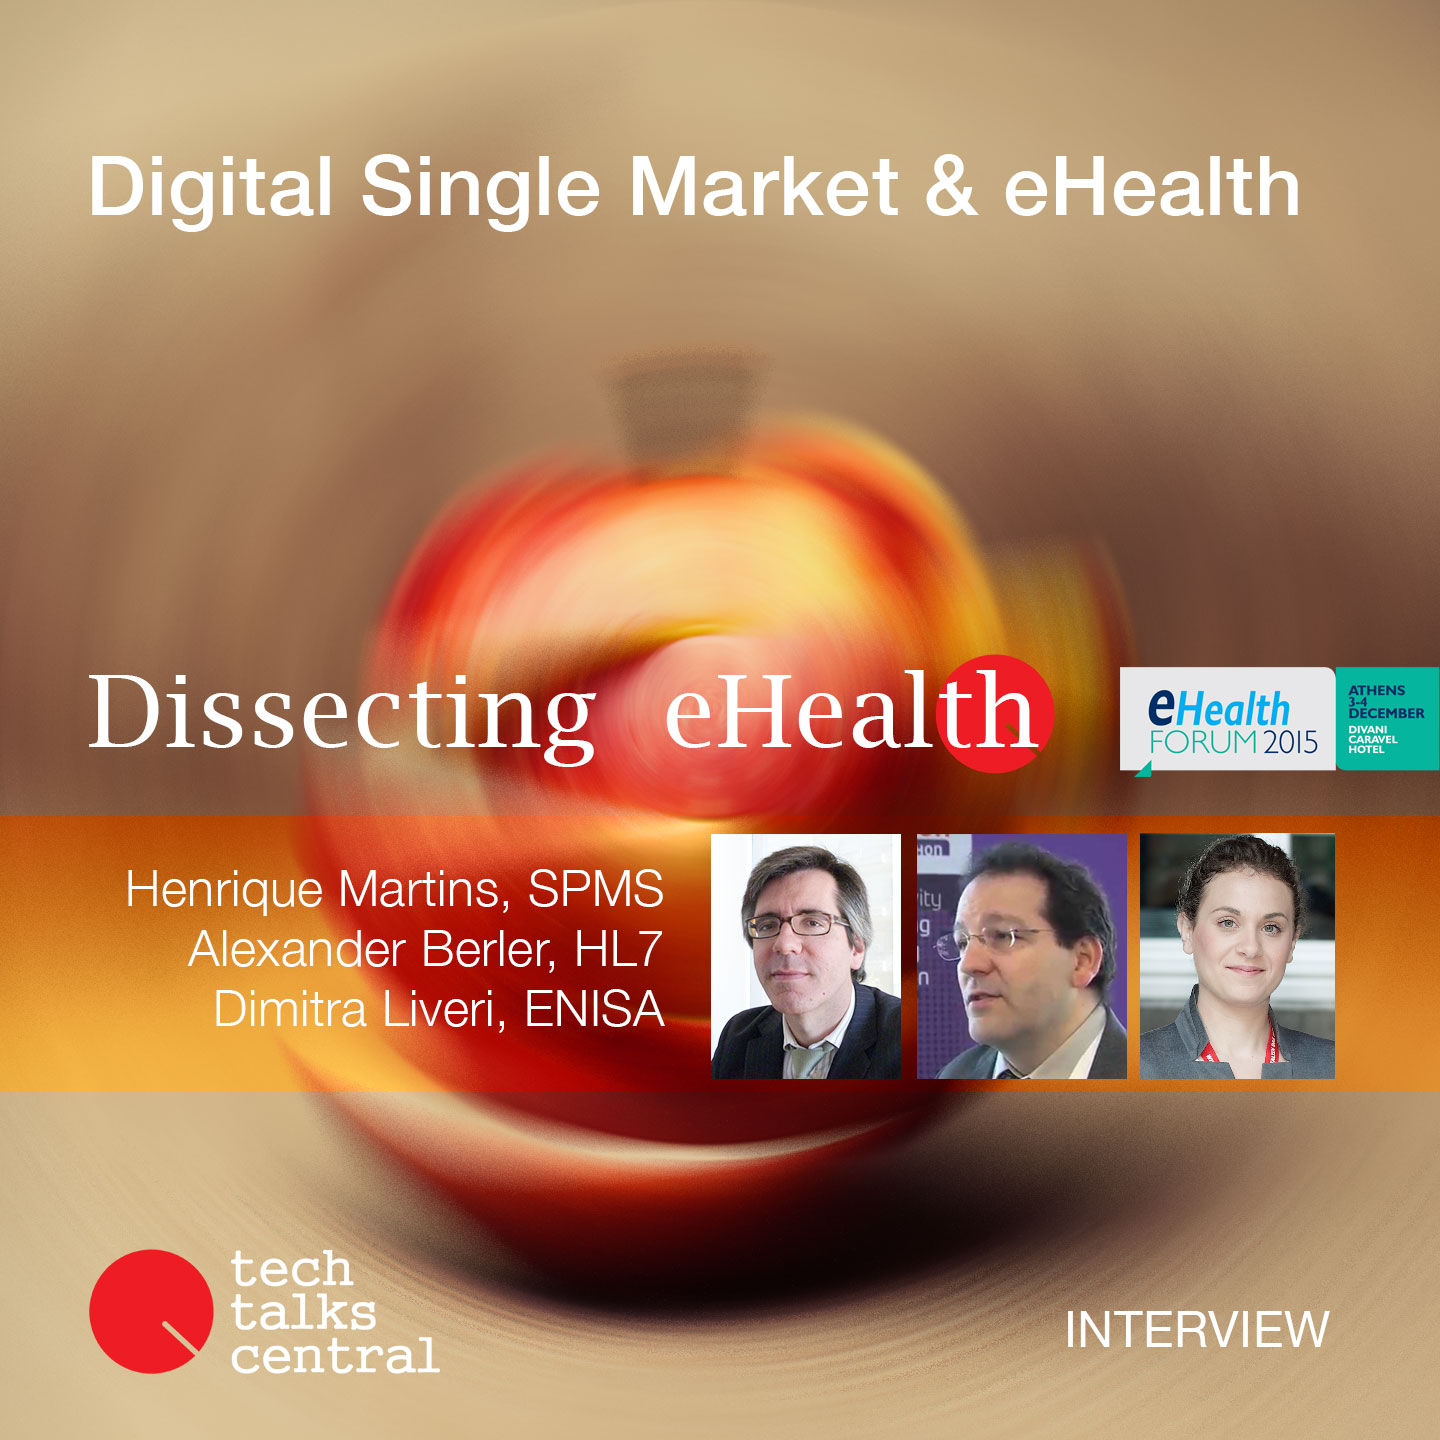 Digital Single Market and eHealth